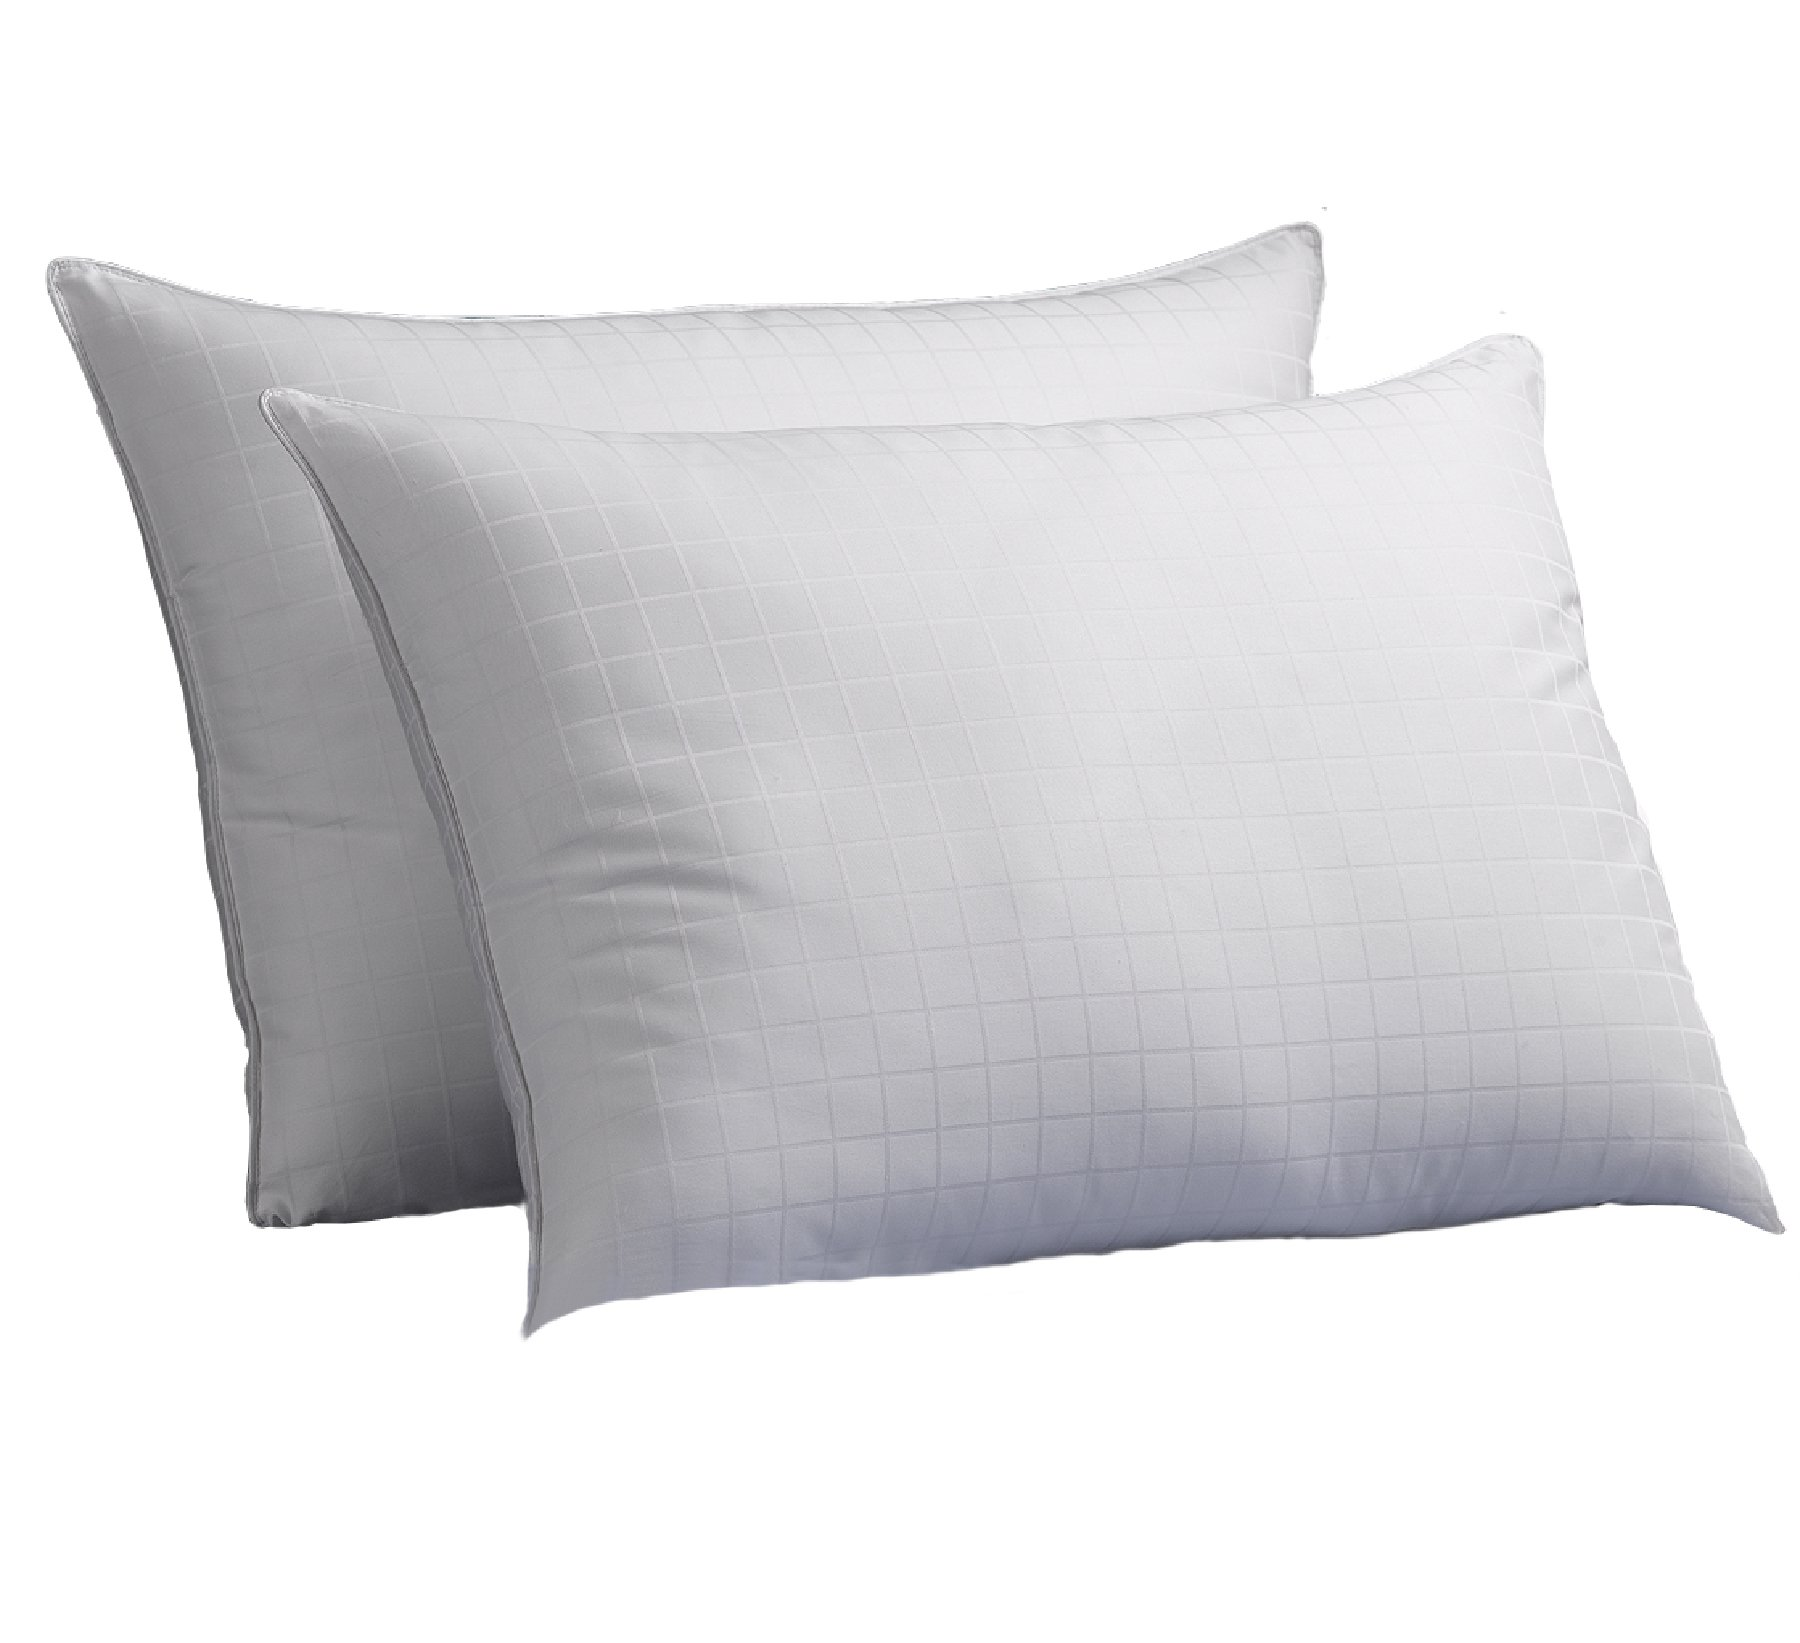 FIRM Hotel Luxe Plush Down-Alternative Pillows 2-Pack, Standard Size, Gel-Fiber Filled - Hypoallergenic, 100% Cotton Shell With Windowpane Pattern FIRM Density, Best For Side Sleepers & Back Sleeper